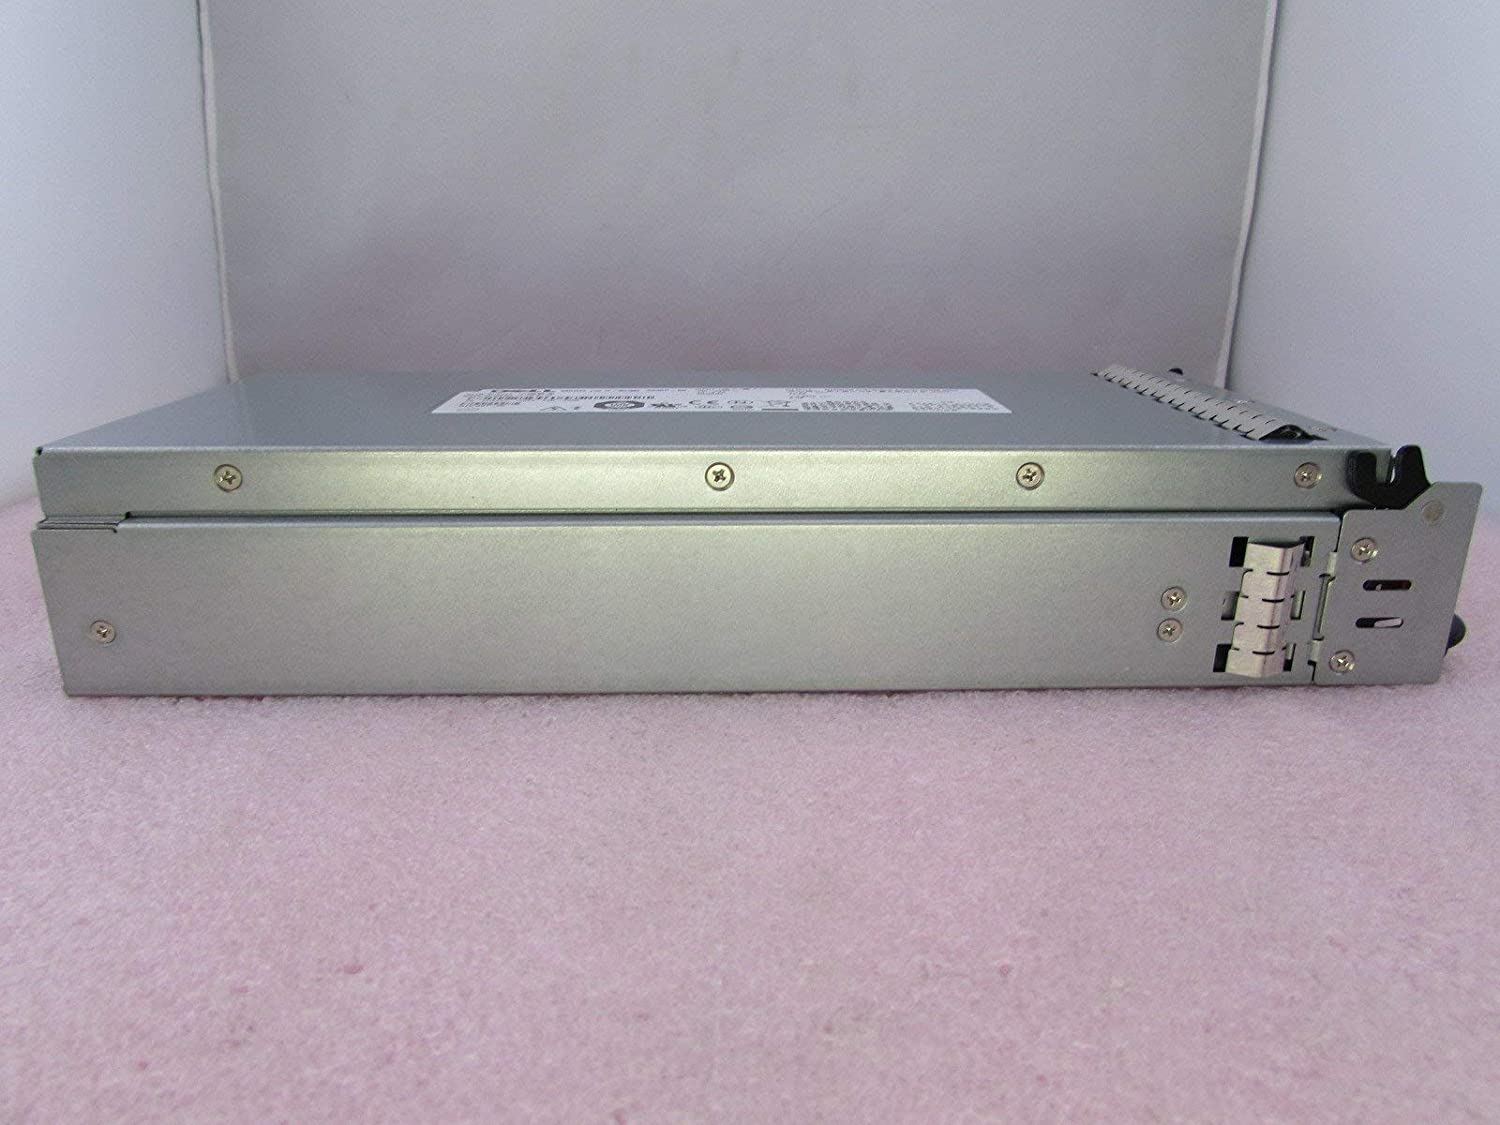 Dell PowerEdge 2900 930W Hot-Swappable Server TFX12V Power Supply U8947 A930P-00 Renewed